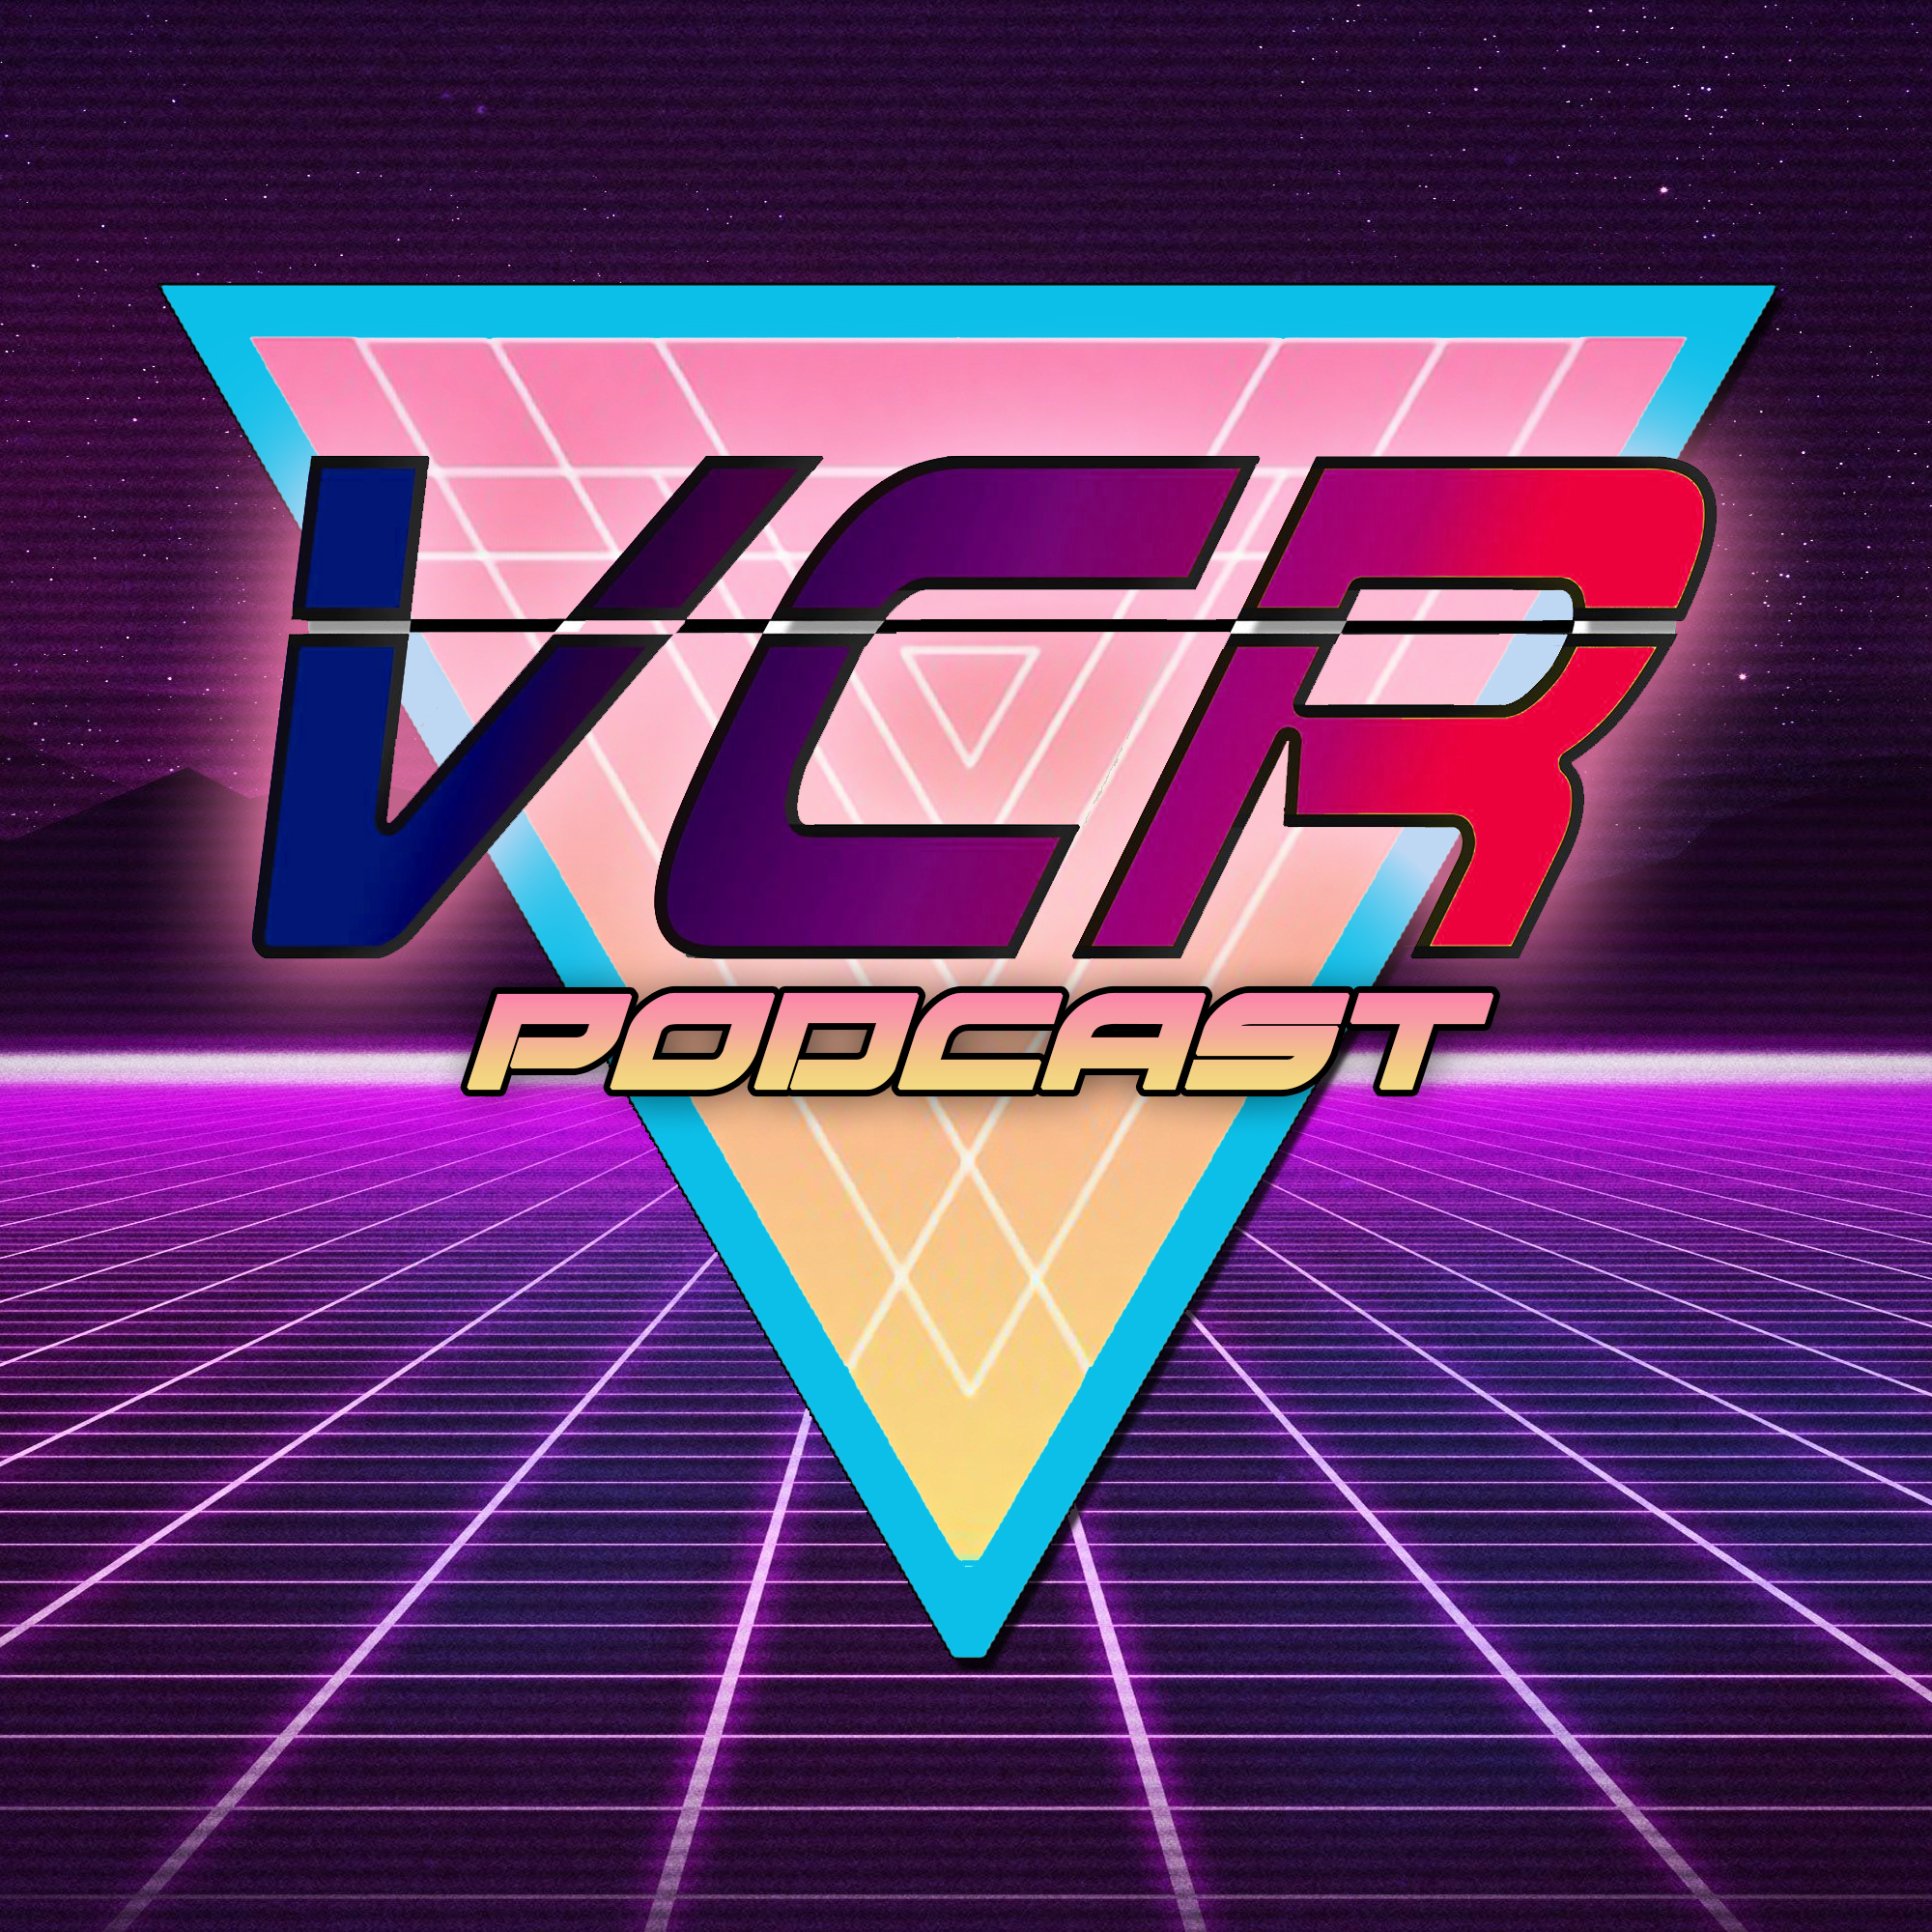 VCR Podcast